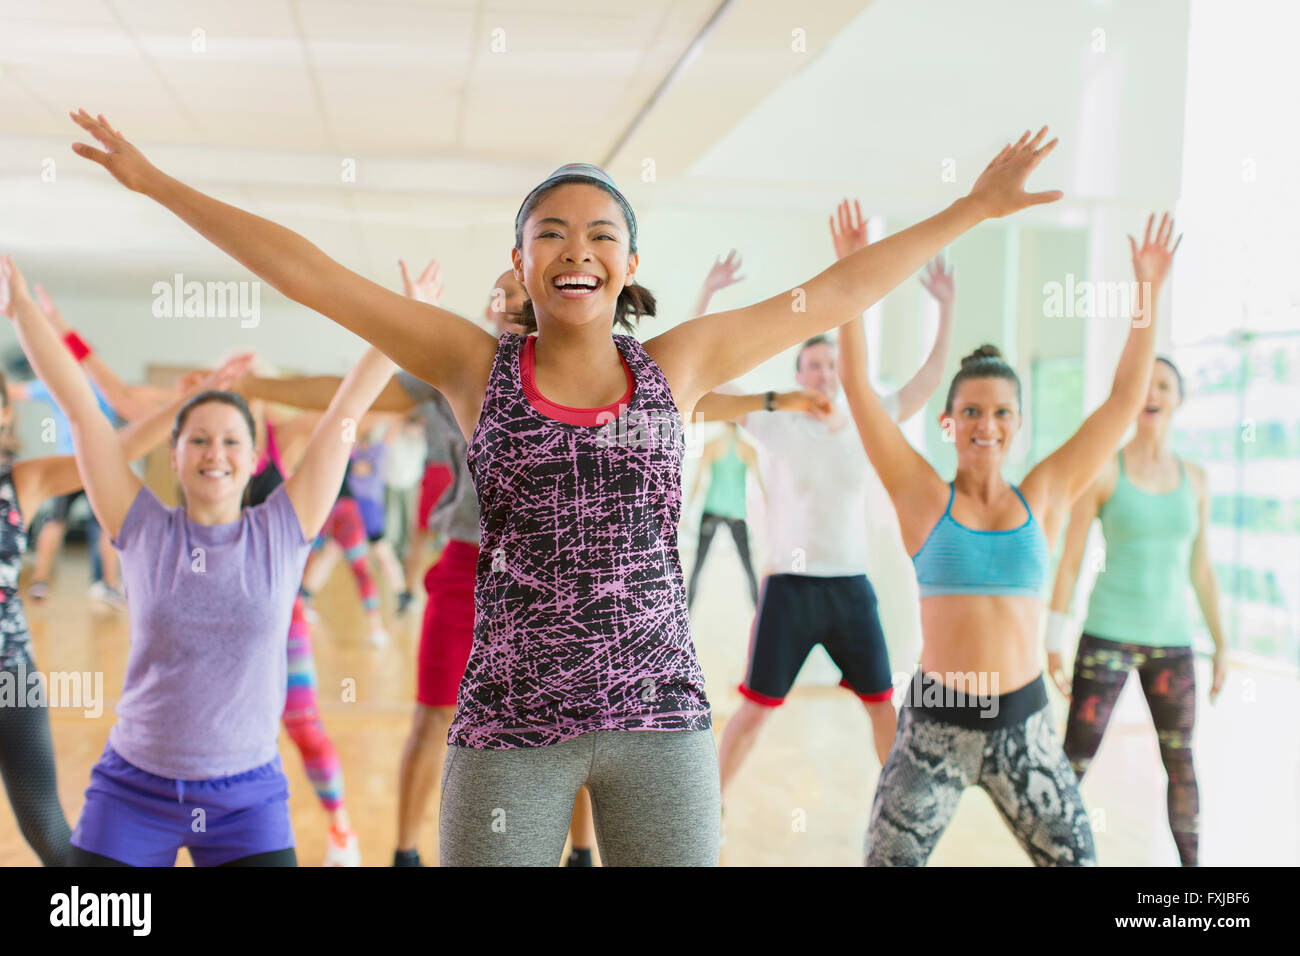 Enthusiastic woman with arms outstretched in aerobics class Stock Photo